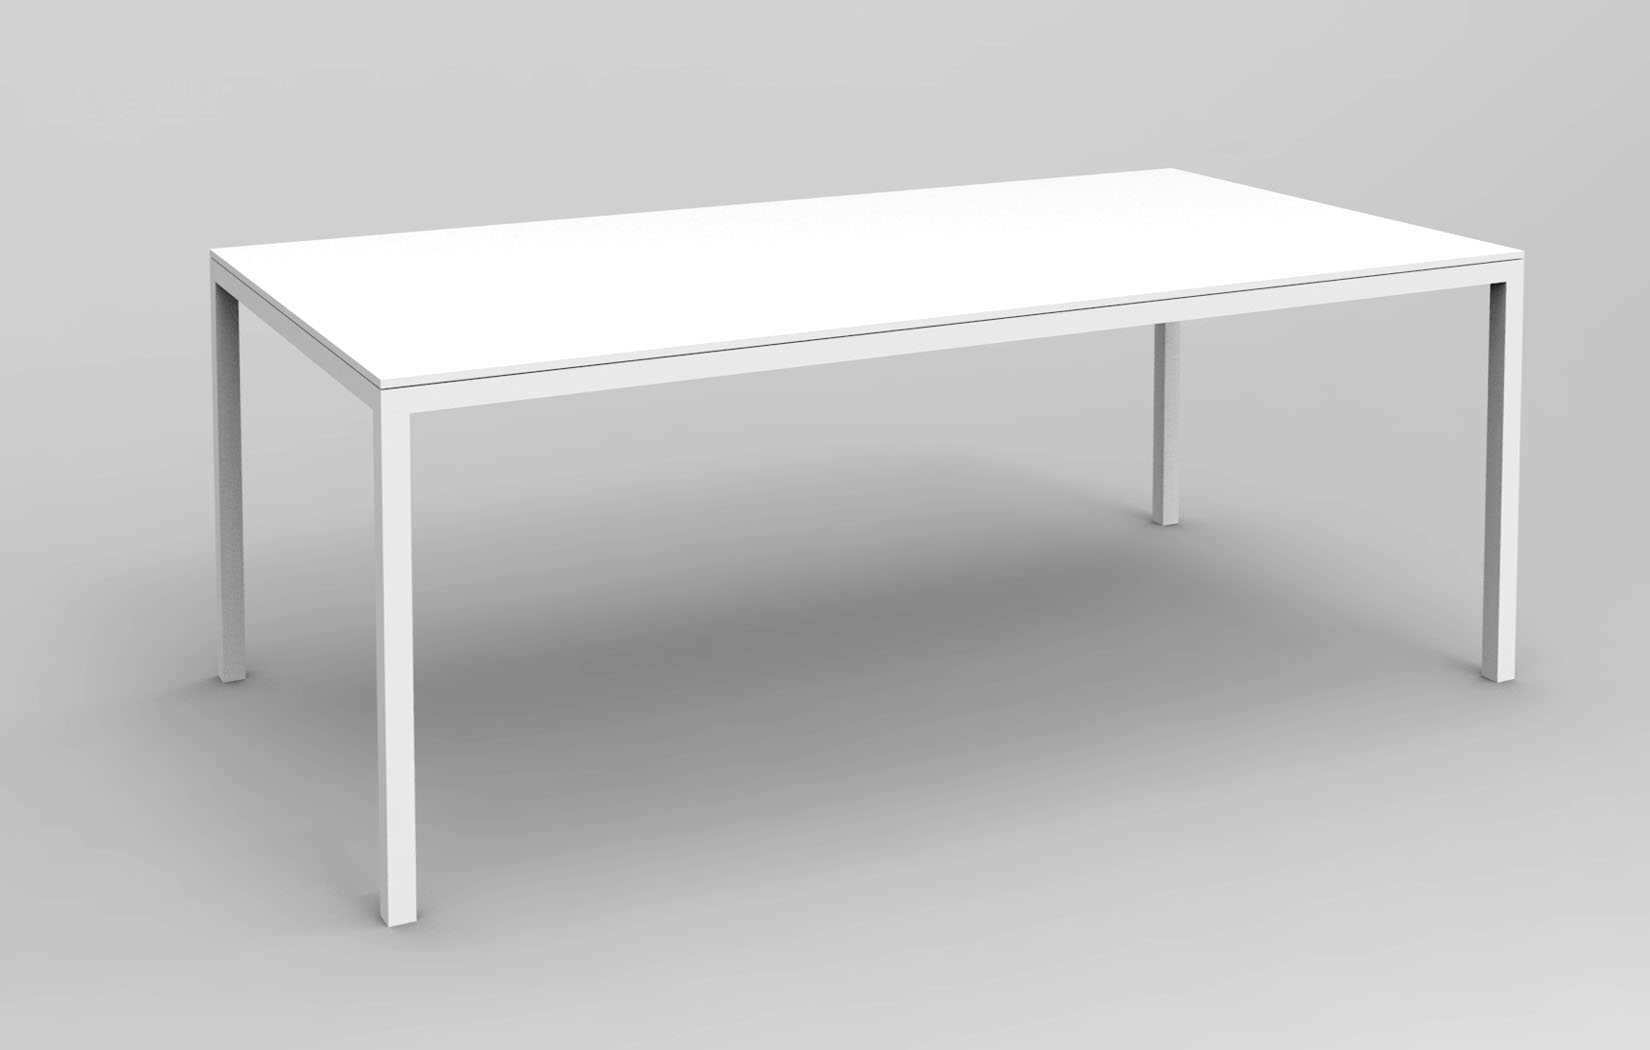 Lune design tavolo in corian© ultra light